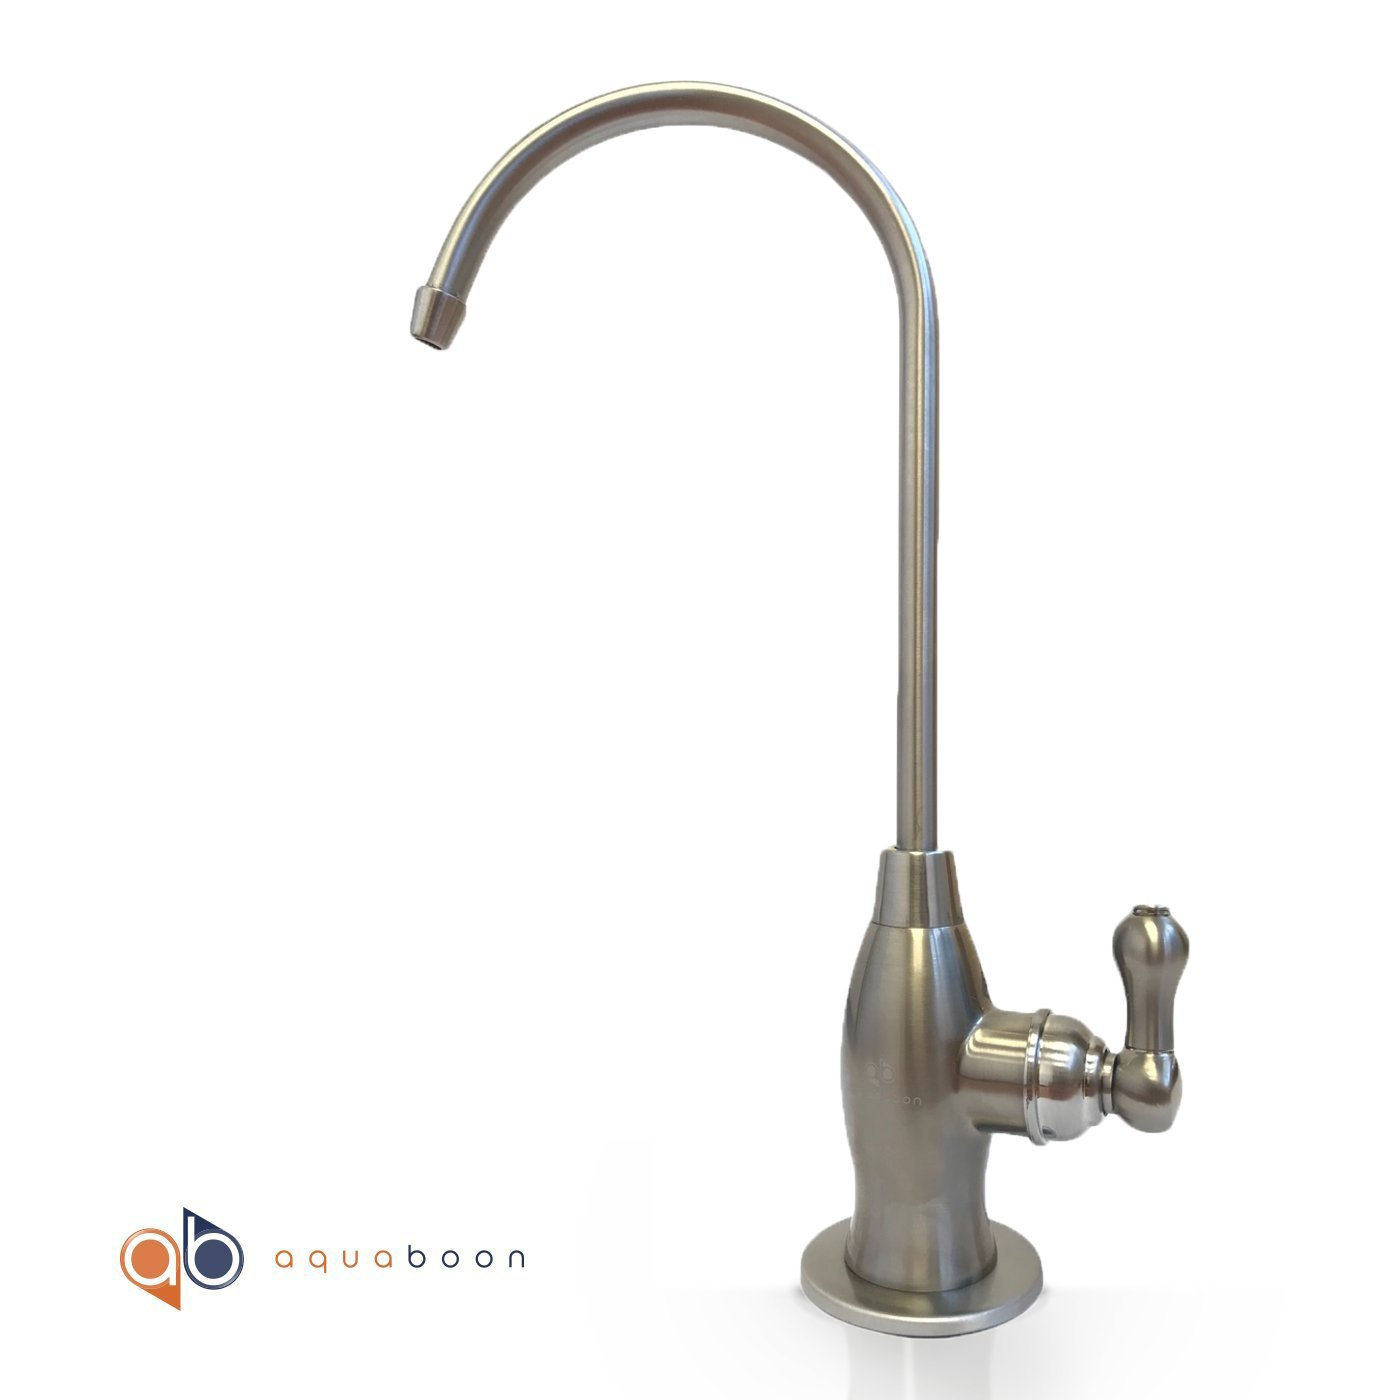 Aquaboon Water Filter Purifier Faucet for Any RO Unit or Water Filtration System (Contemporary, BRUSHED NICKEL)